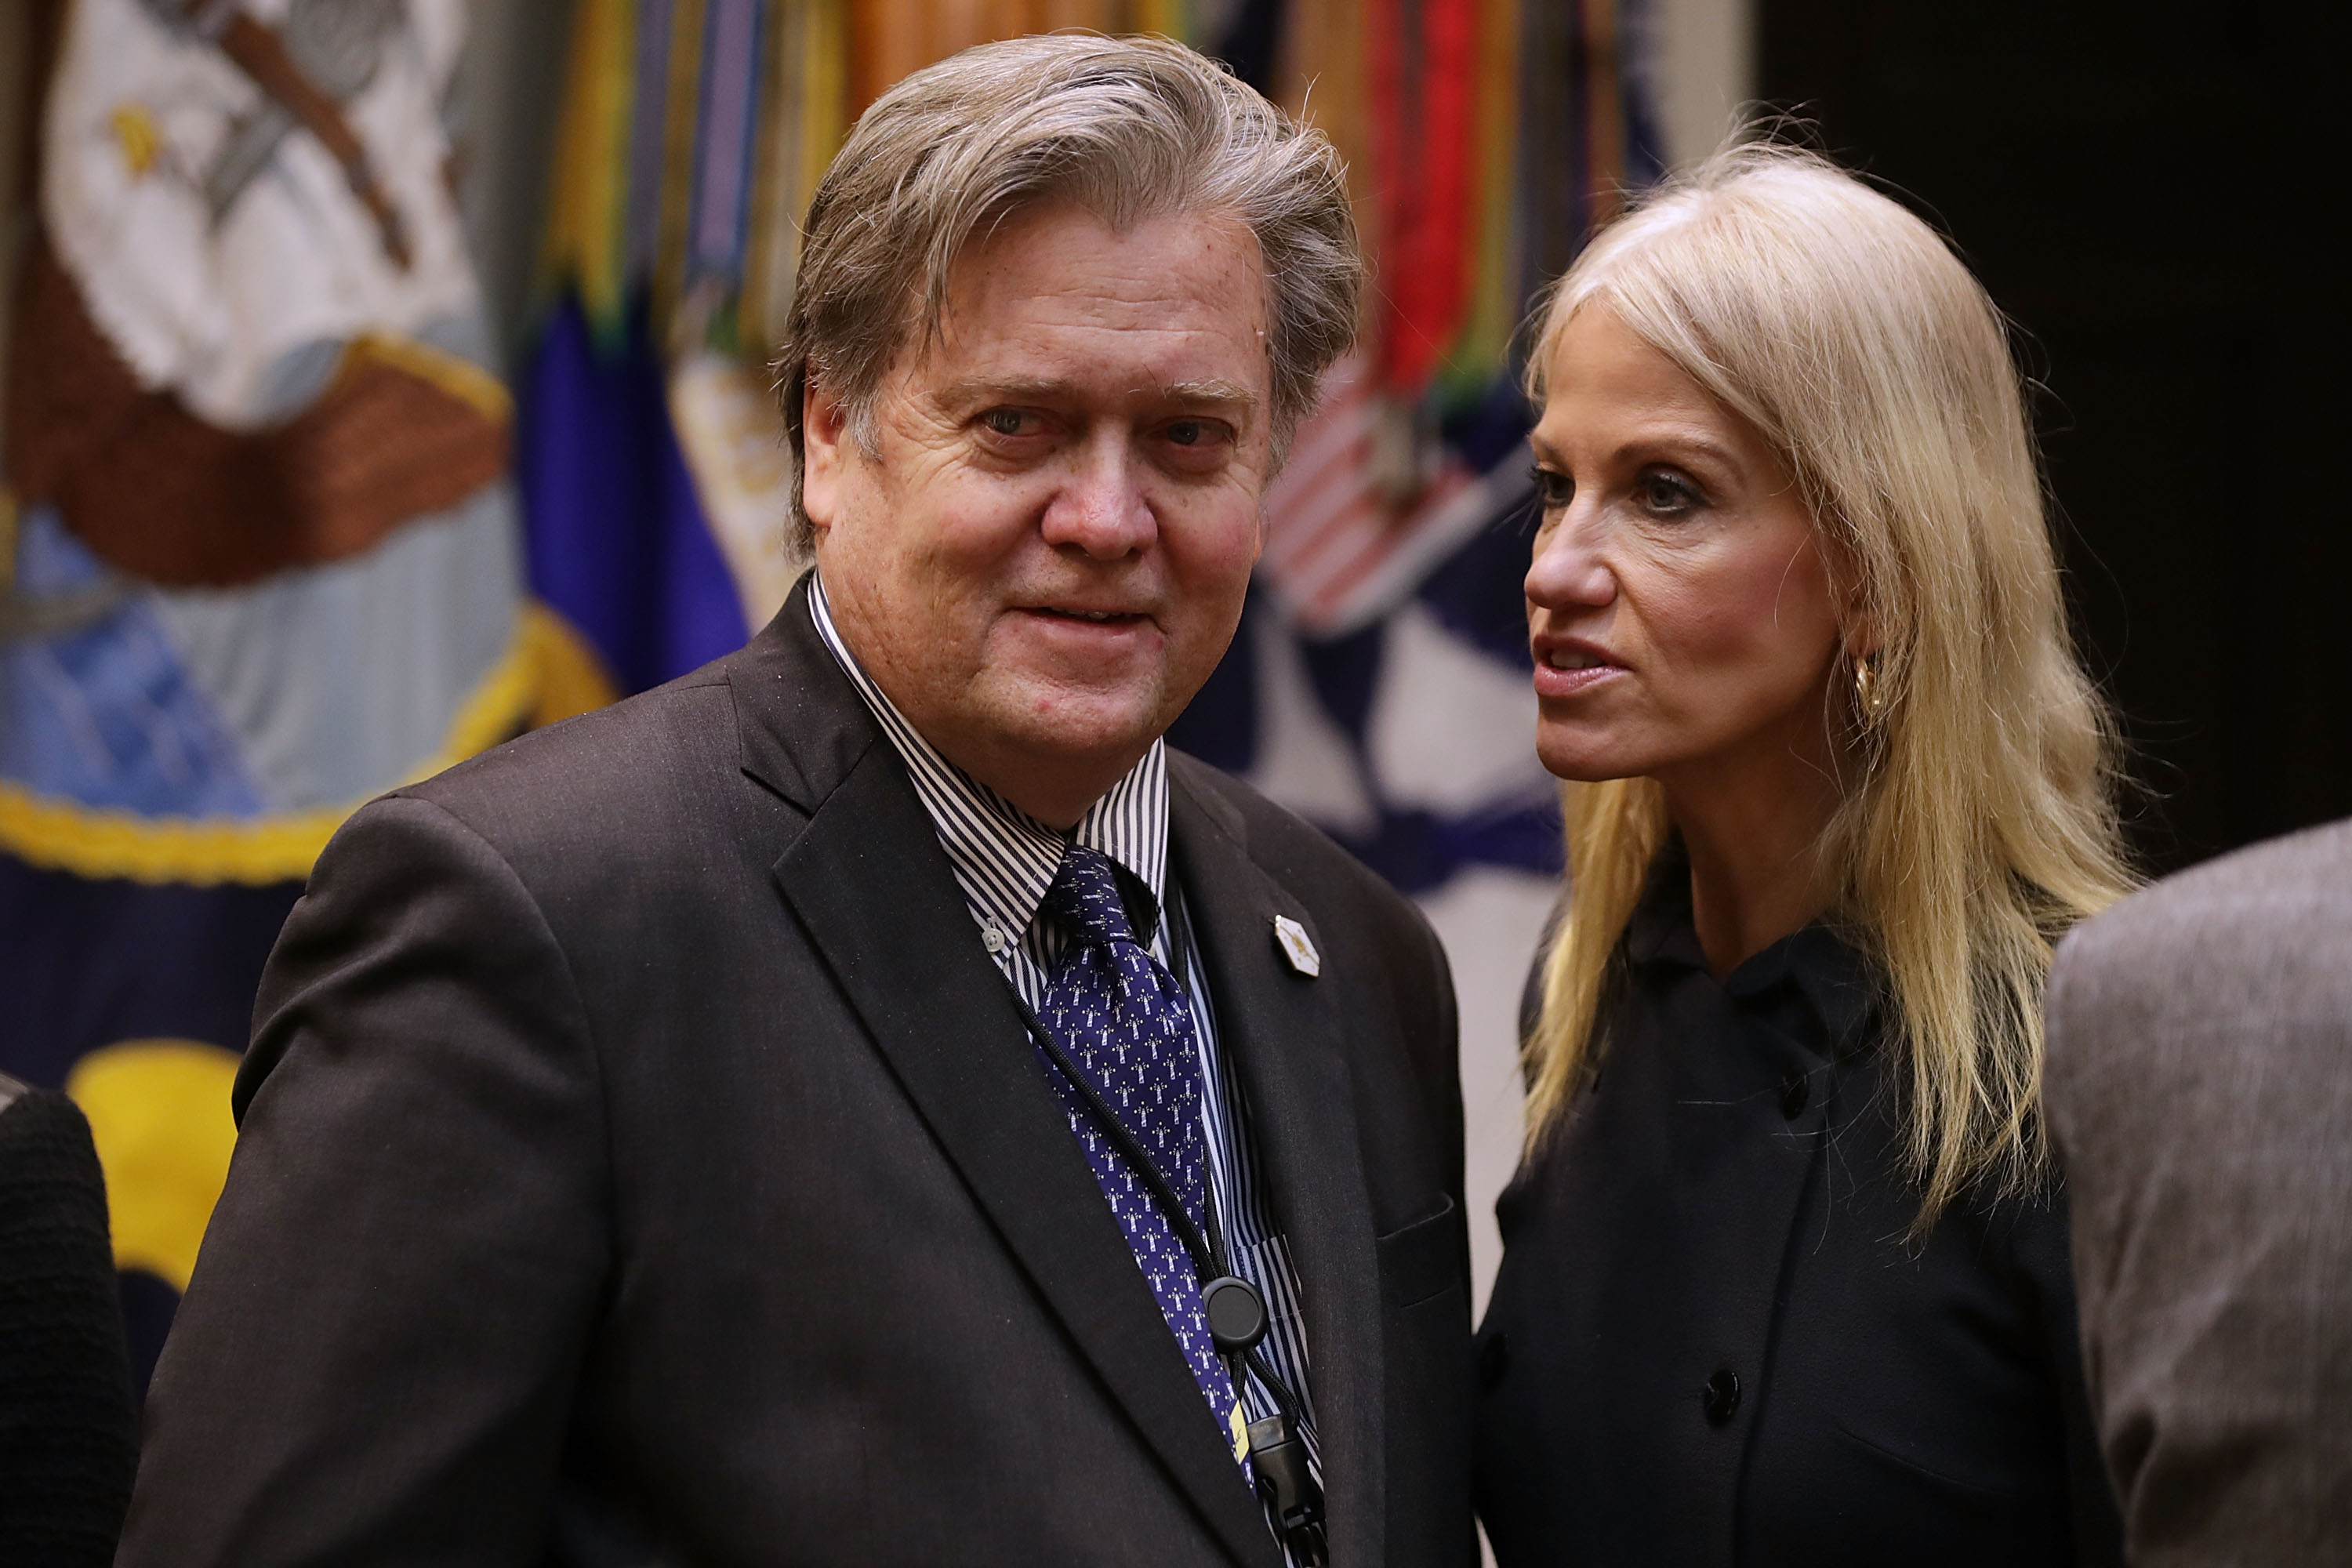 White House Chief Strategist Steve Bannon (L) and Counselor to the President Kellyanne Conway wait for the arrival of U.S. President Donald Trump for a meeting on cyber security in the Roosevelt Room at the White House January 31, 2017 in Washington, DC.